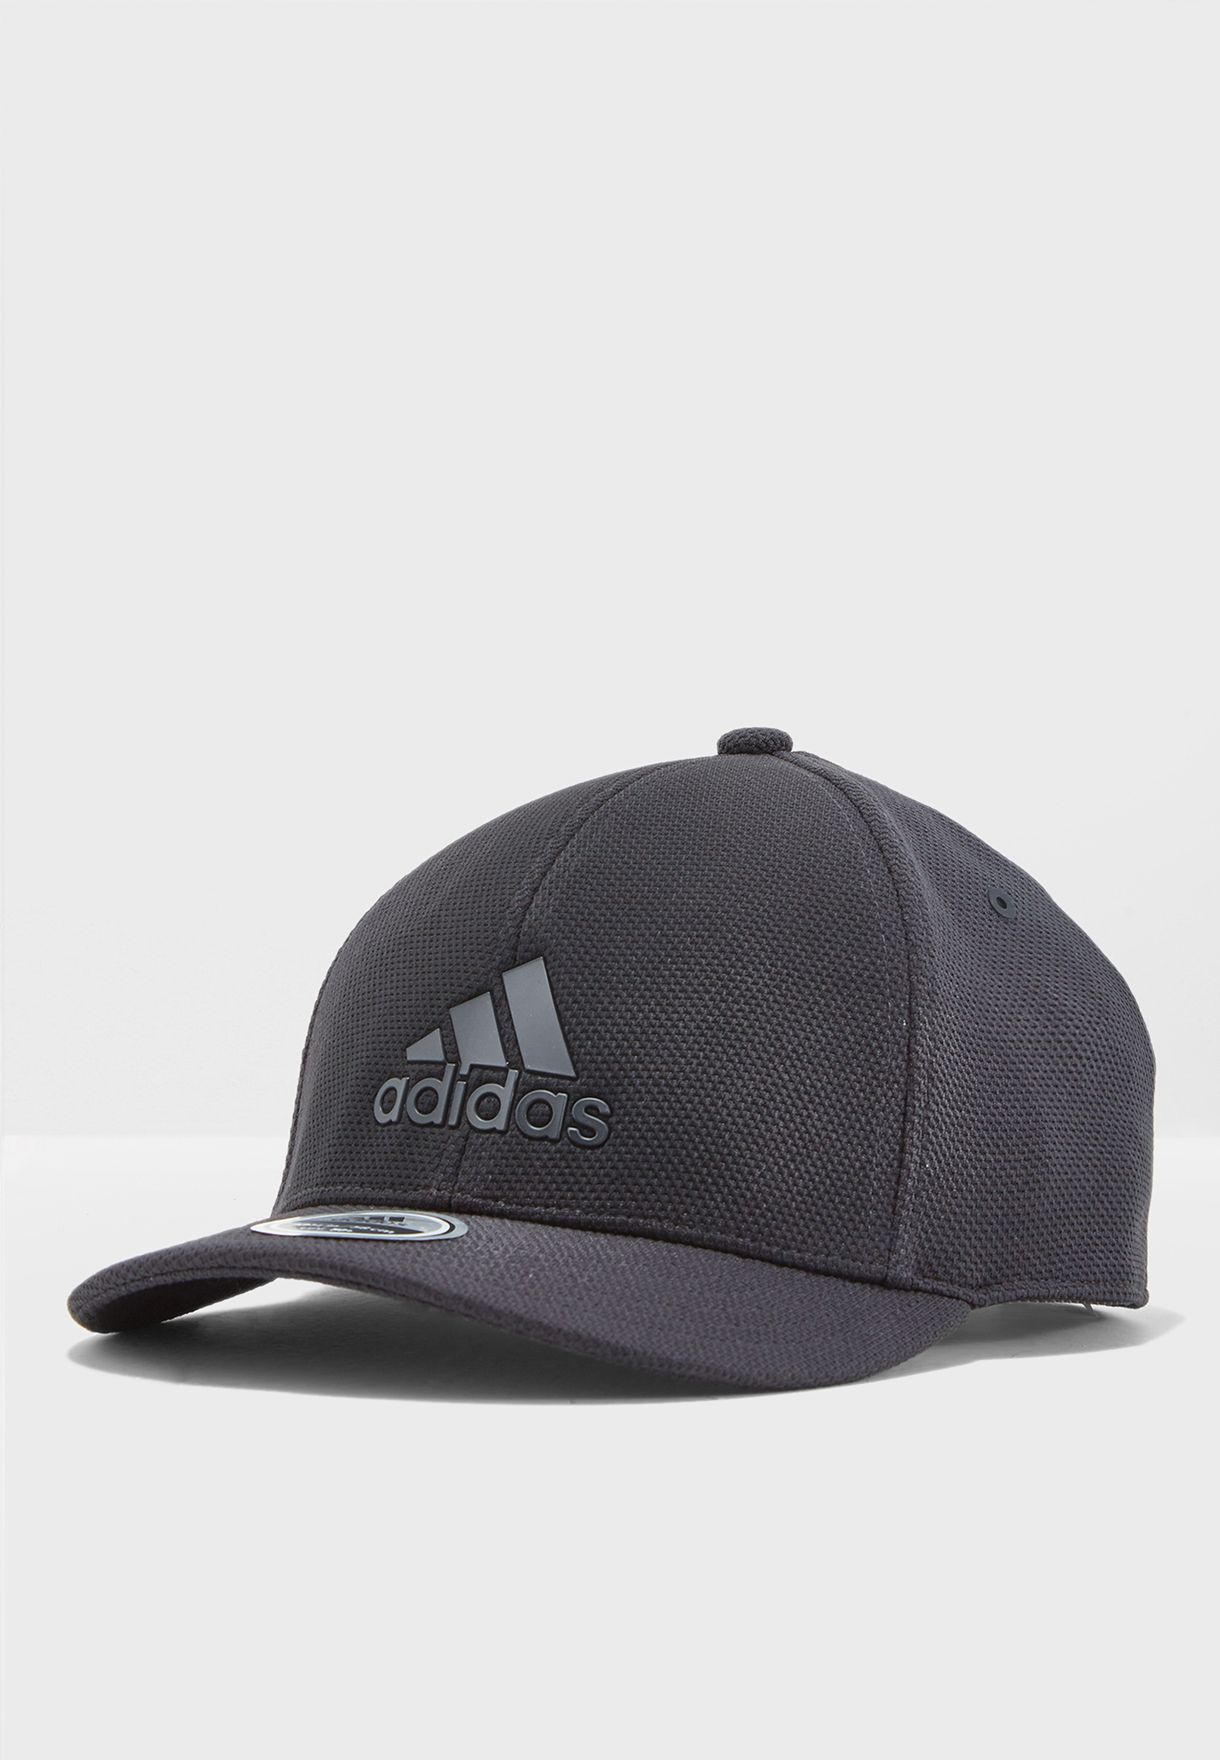 c93625241d069 Shop adidas black S16 Urban Mesh Cap CF4884 for Men in Saudi ...